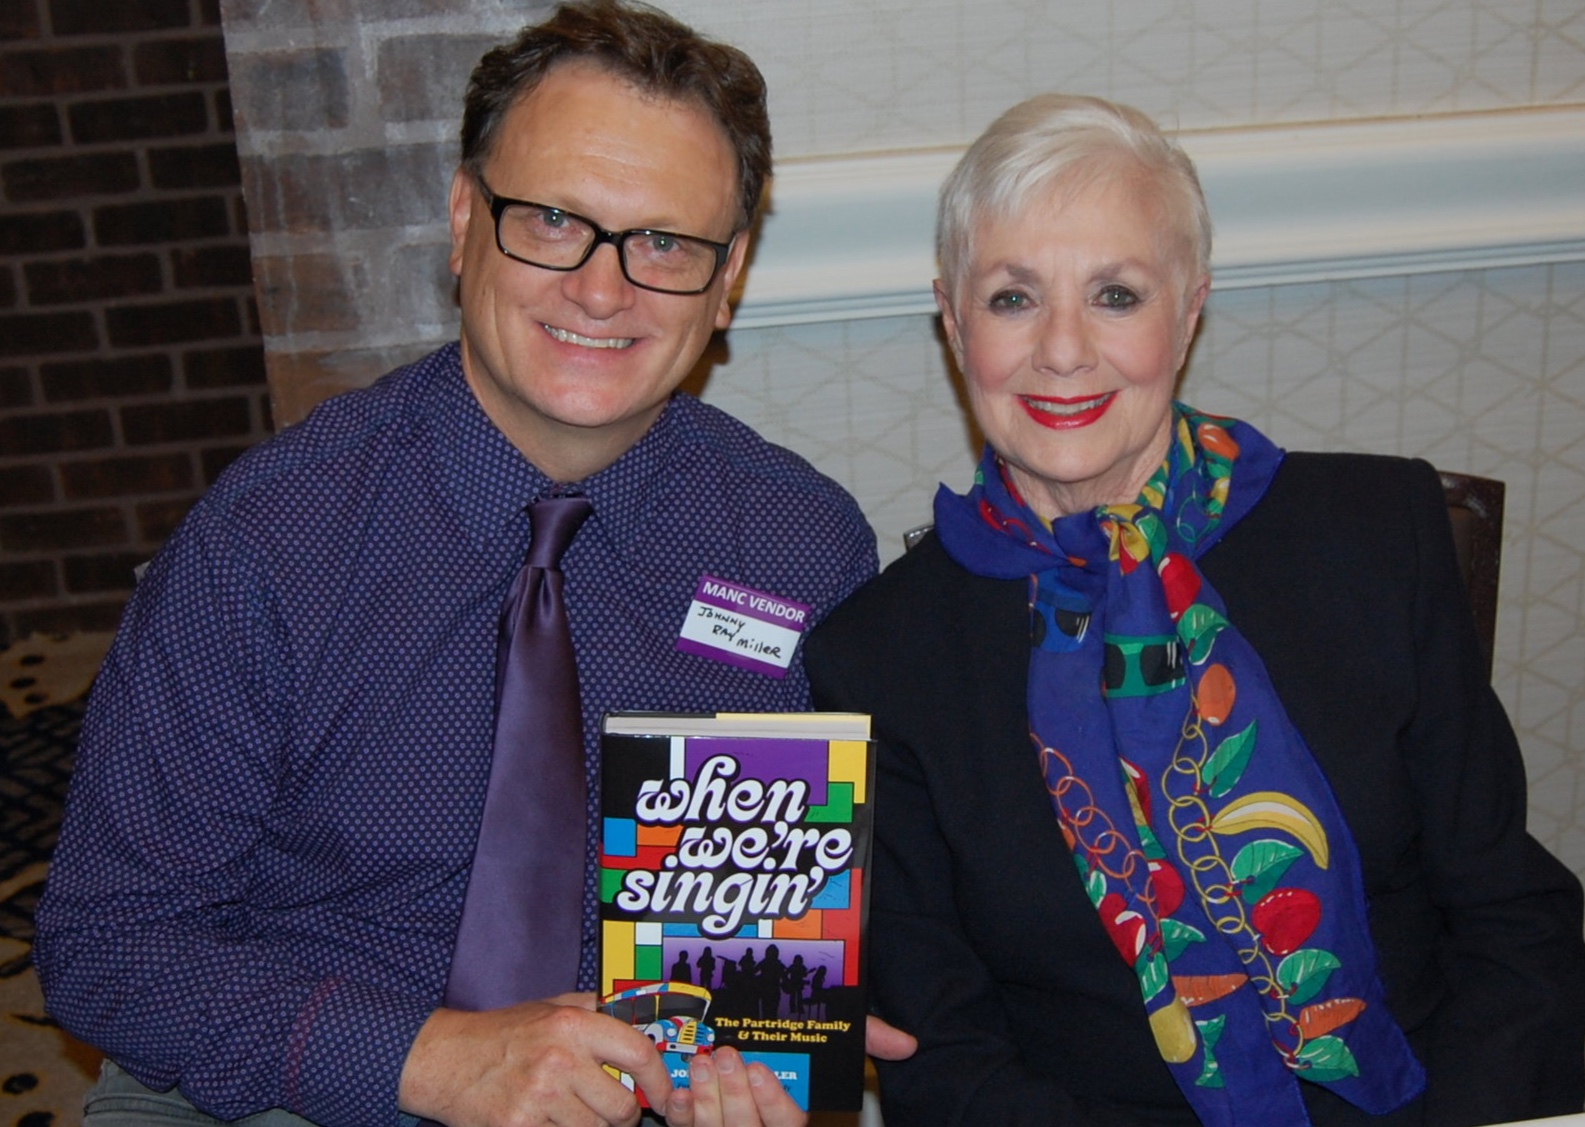 With Shirley Jones, at the very first convention I ever attended in Baltimore, Maryland, 2017.